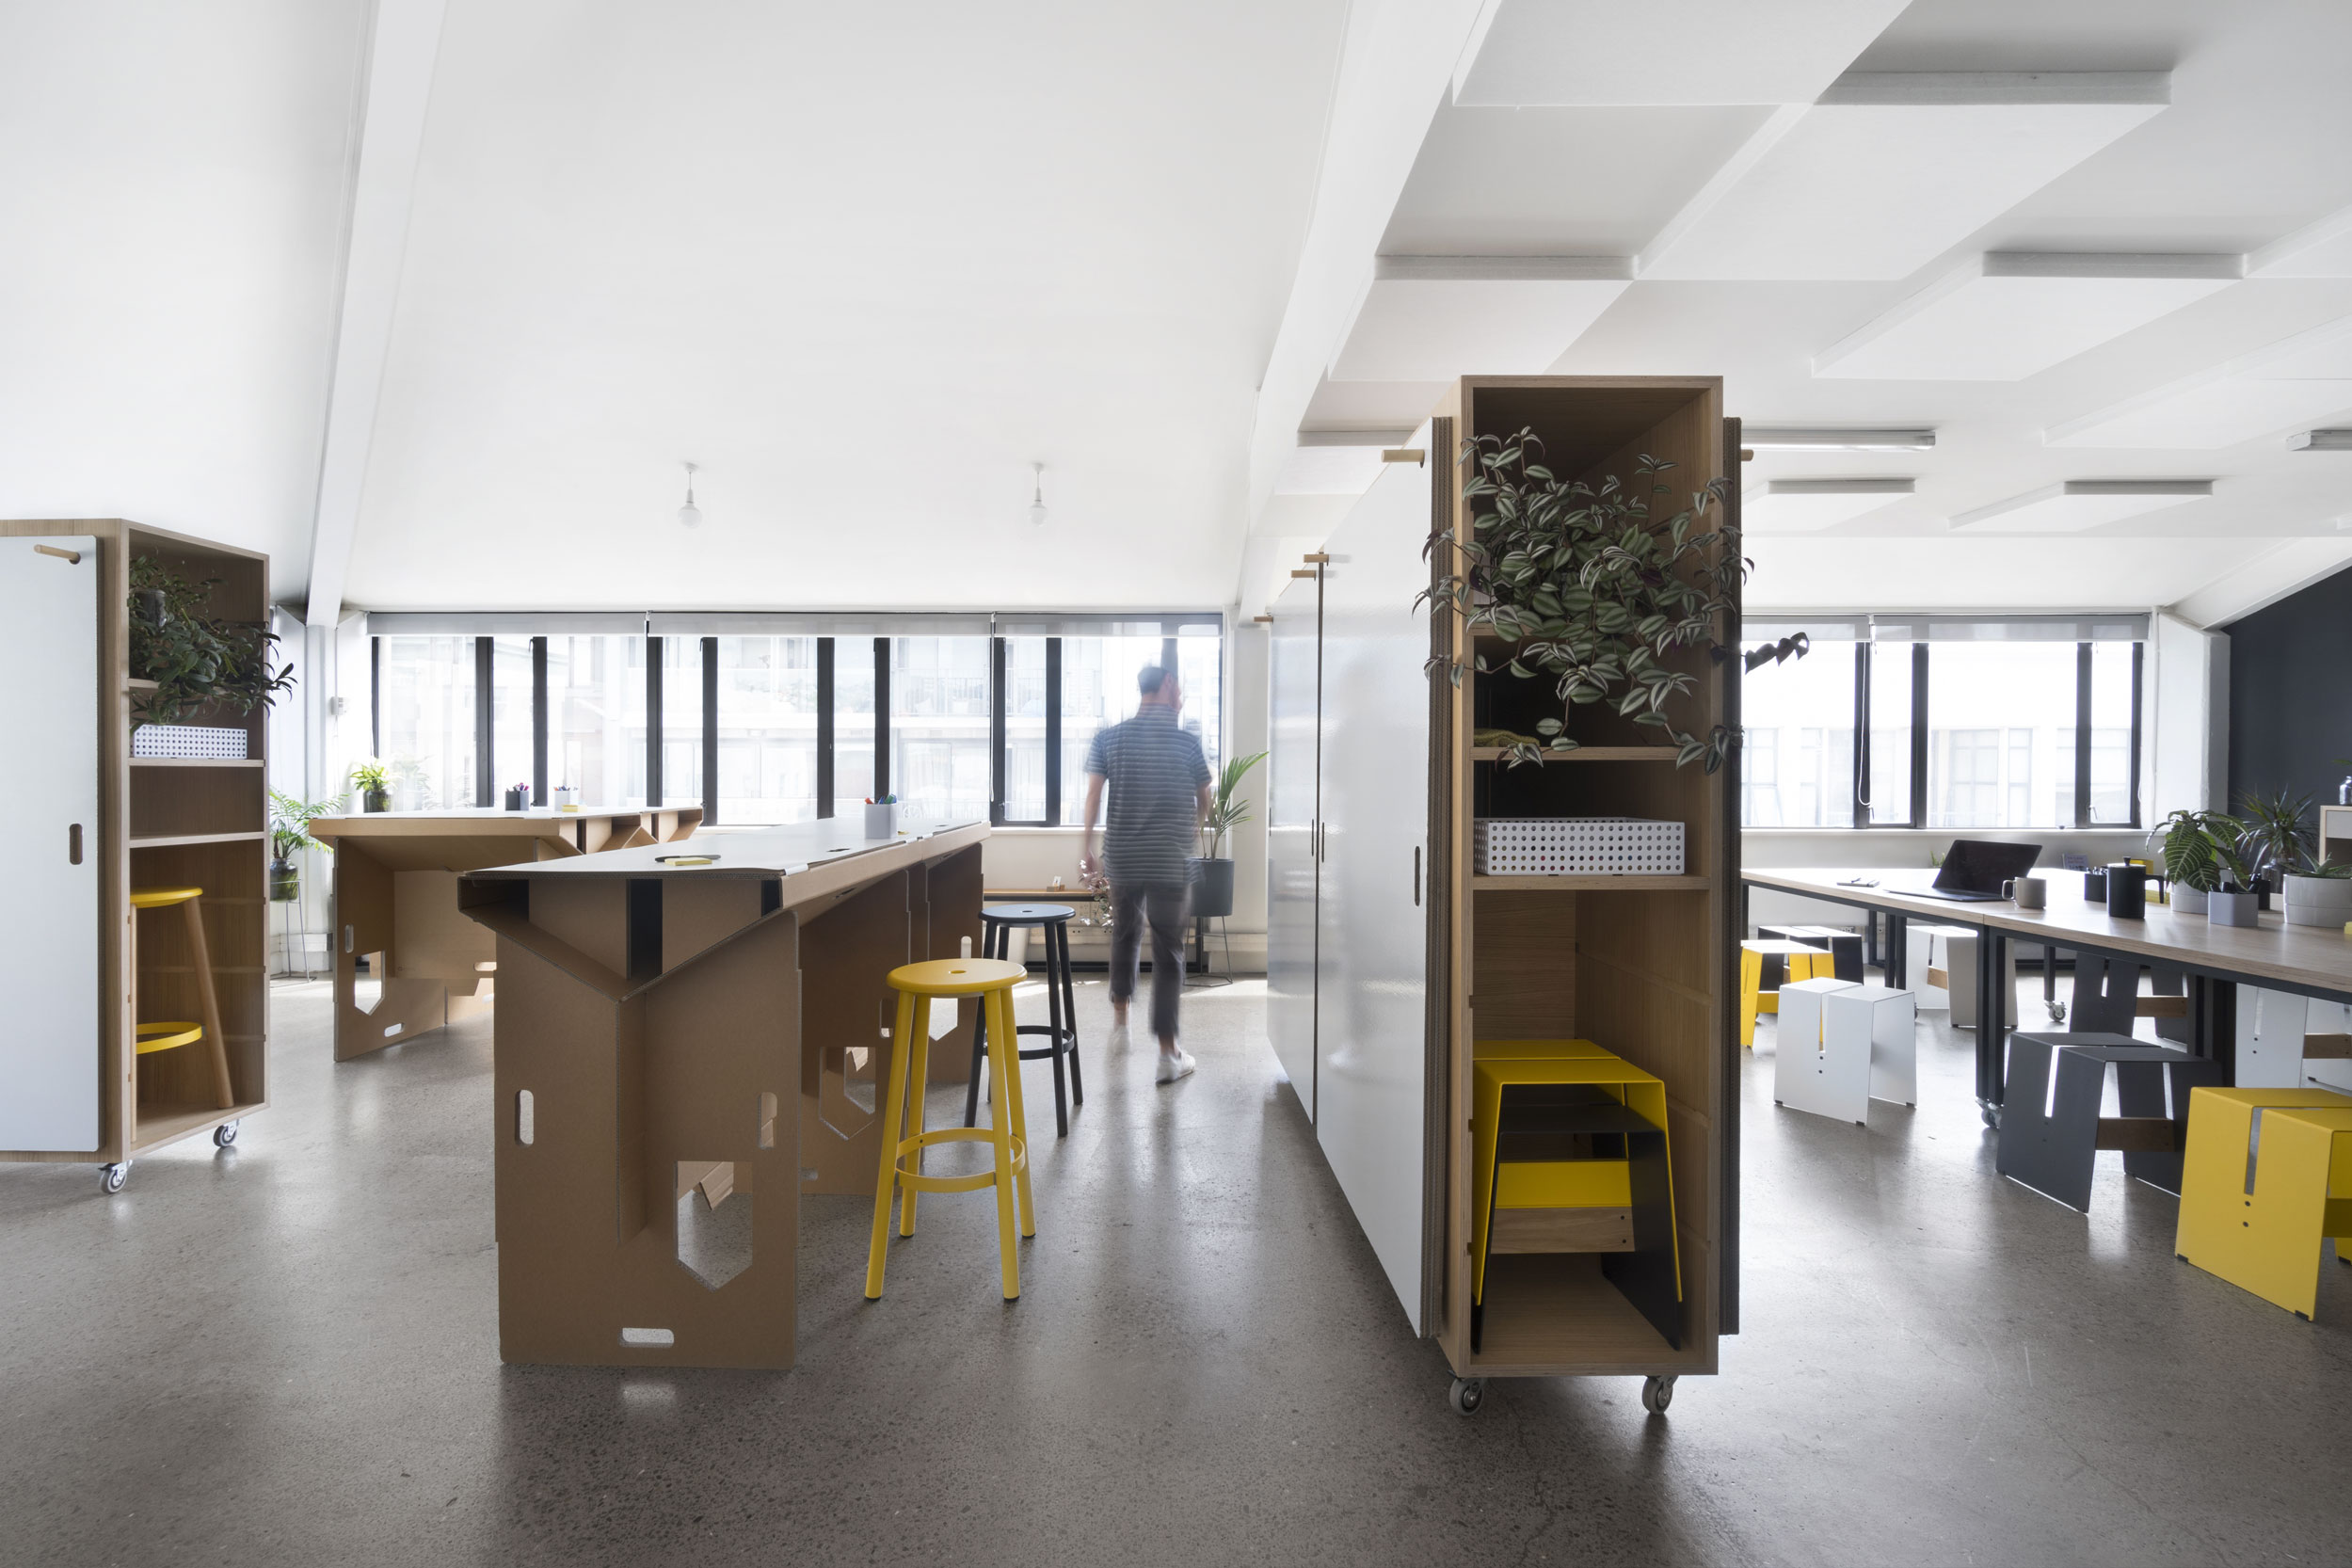 A space for hire designed to enable quality thinking